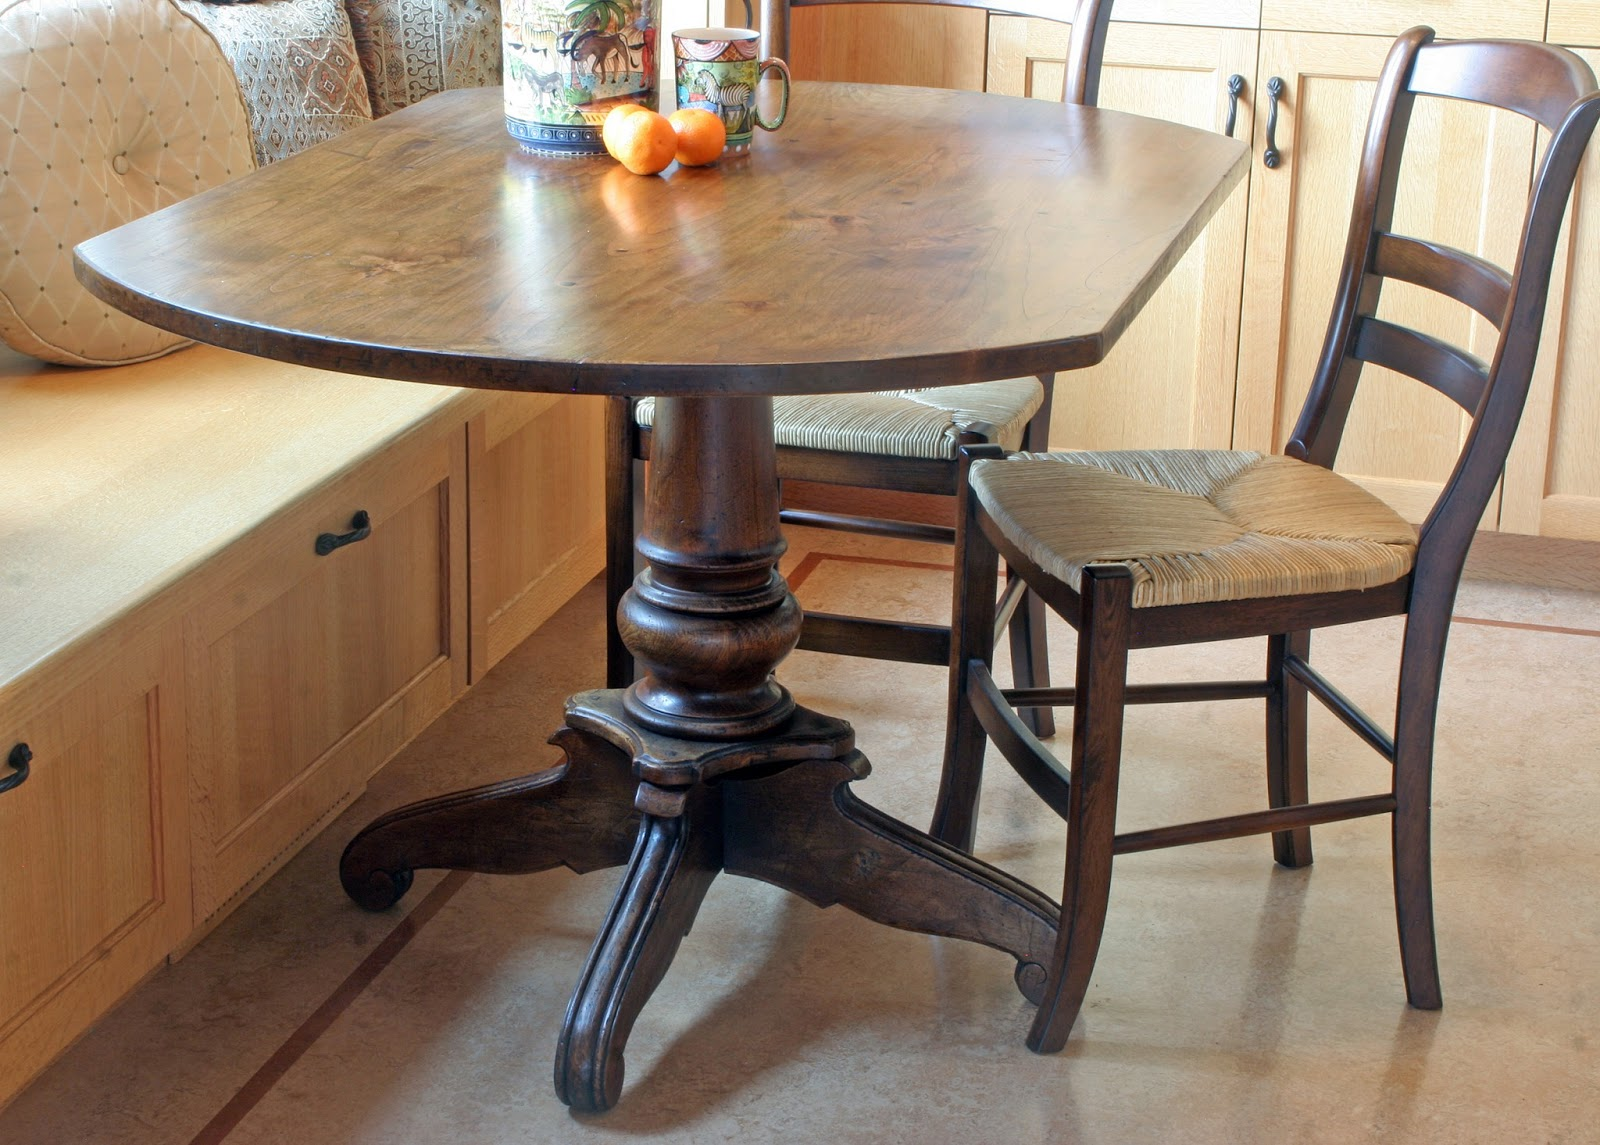 dining table round dining table 8 chairs pedestal kitchen table Dining Table